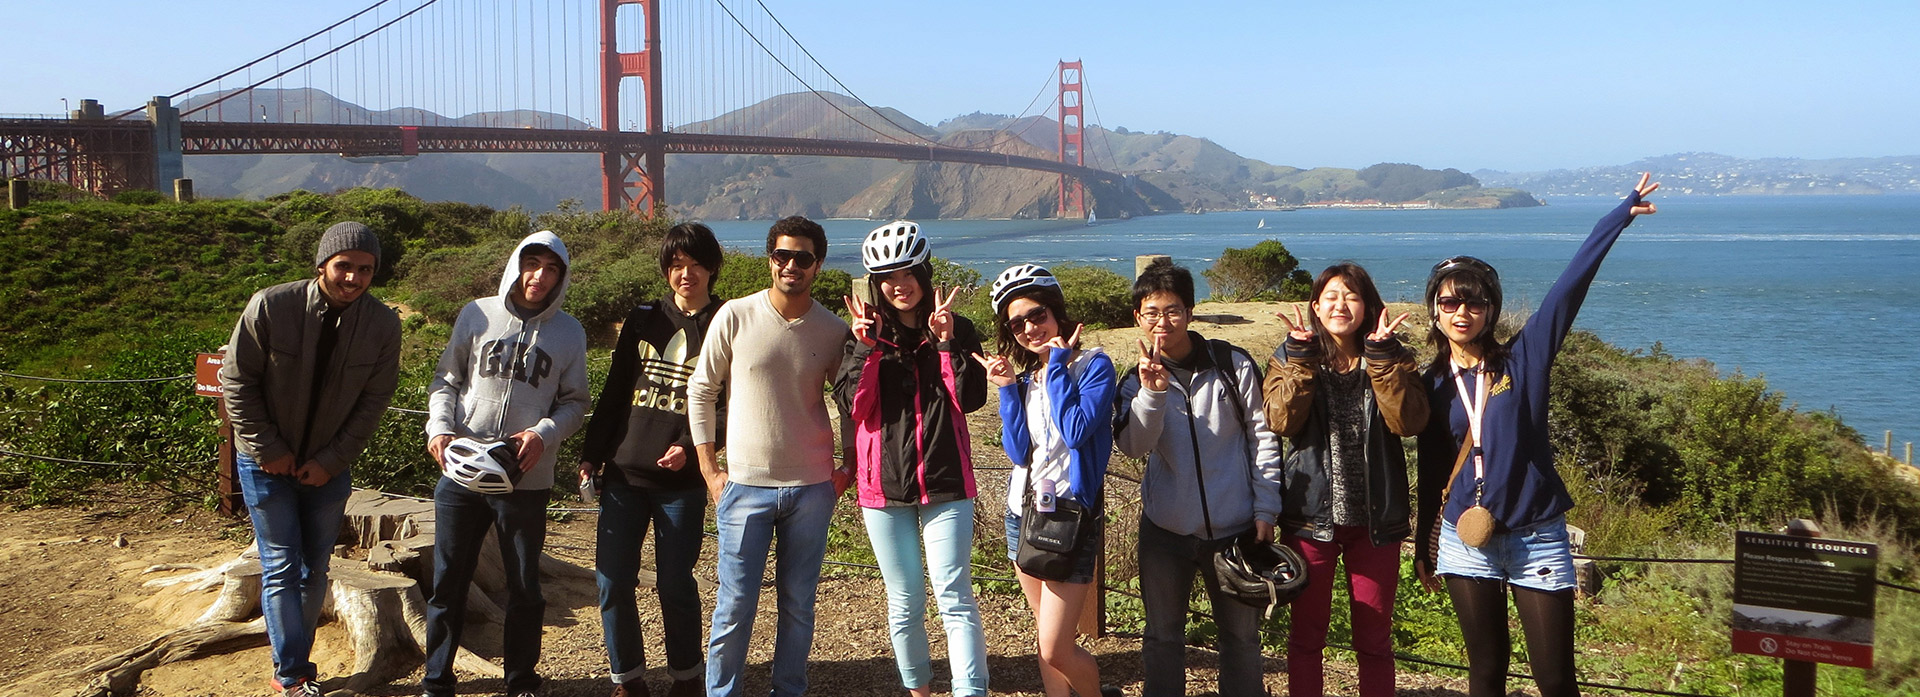 American Language Institute students at San Francisco's Golden Gate Bridge